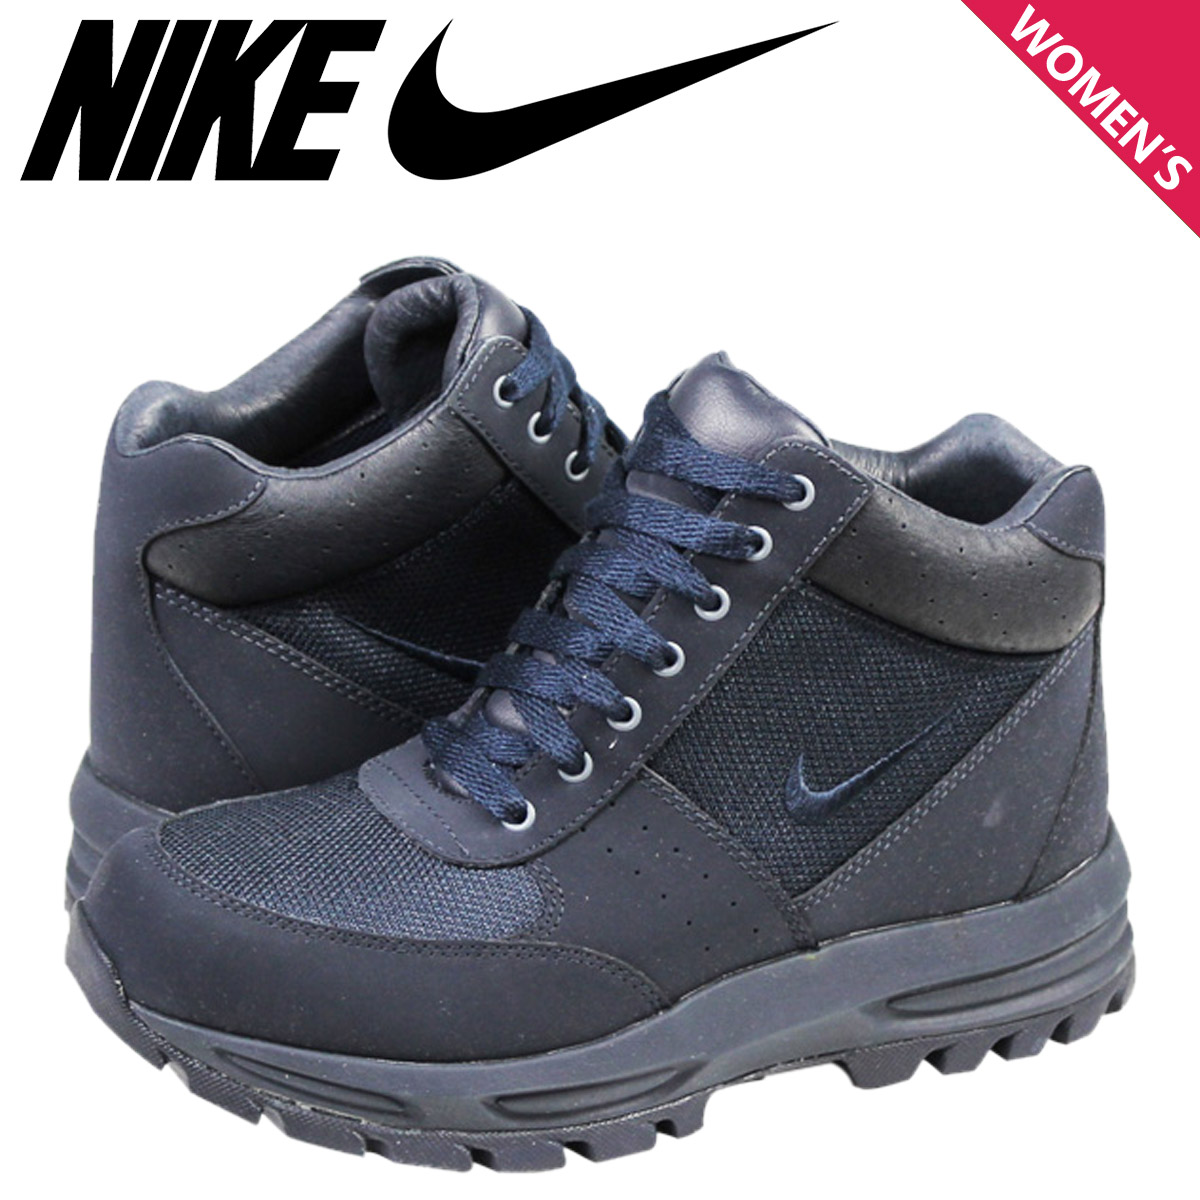 Nike NIKE Ladies GO AWAY ACG TRAIL BOOT GS Boots Sneakers go away trail  boots girls